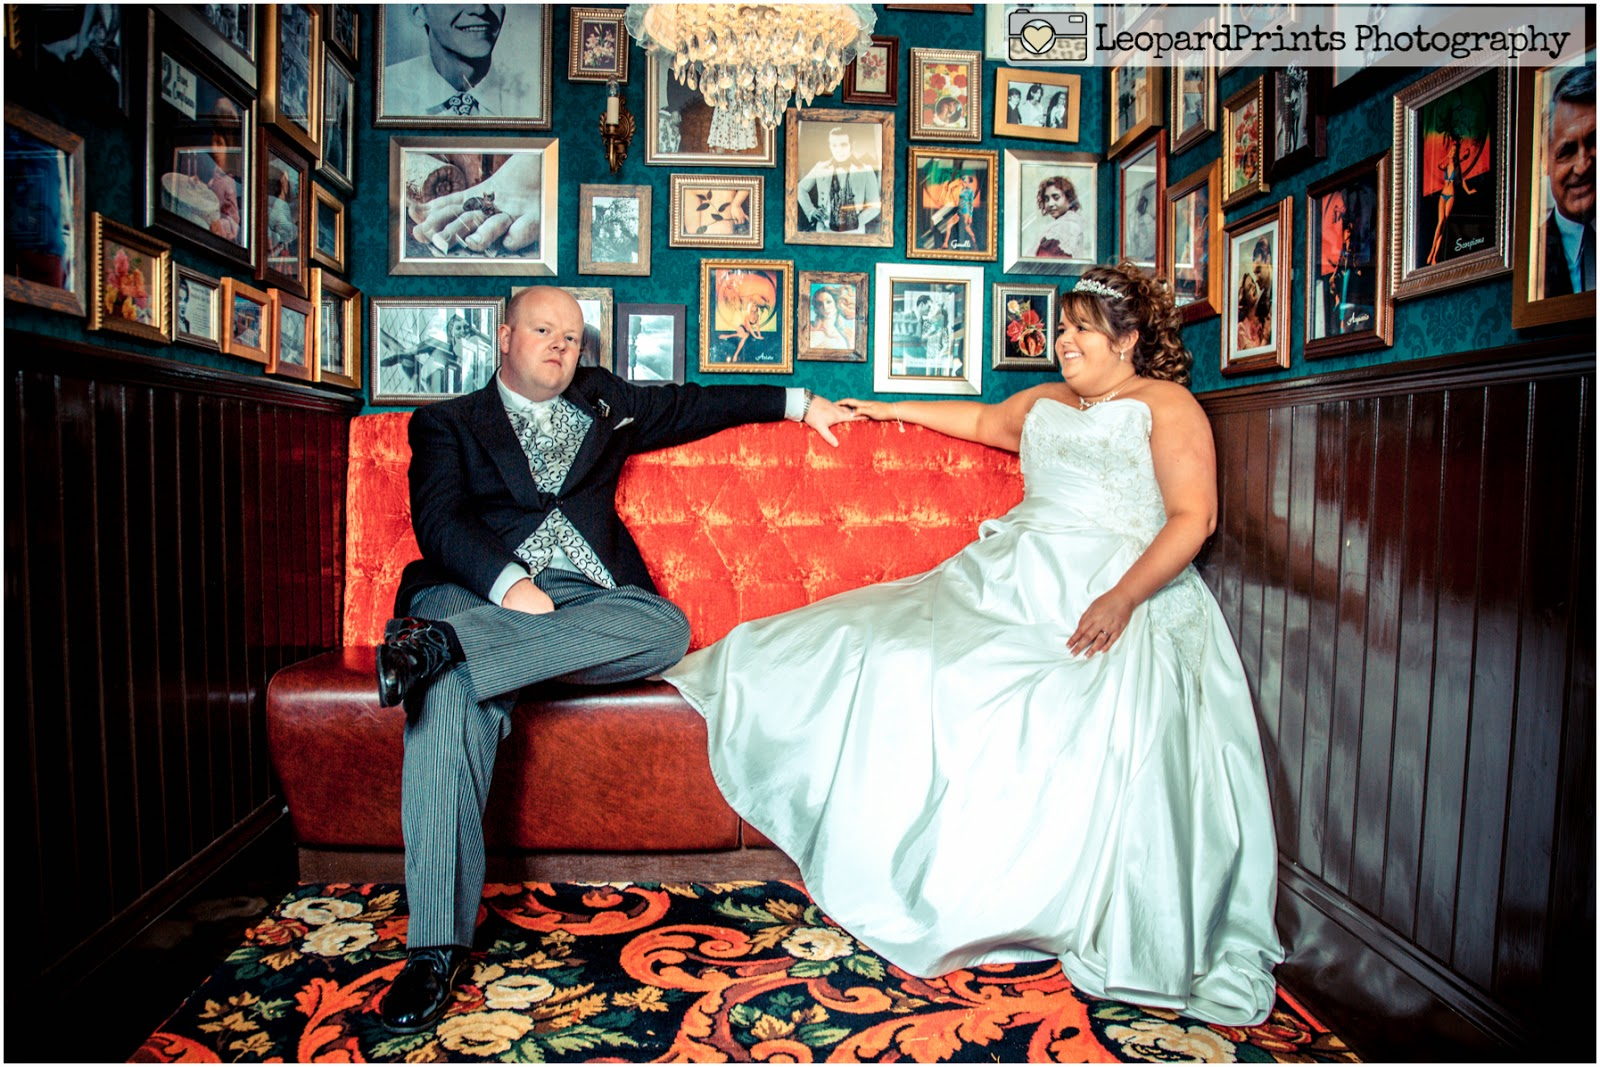 wedding chair covers newcastle upon tyne stokke high second hand photographer at the devere village hotel - leopardprints photography